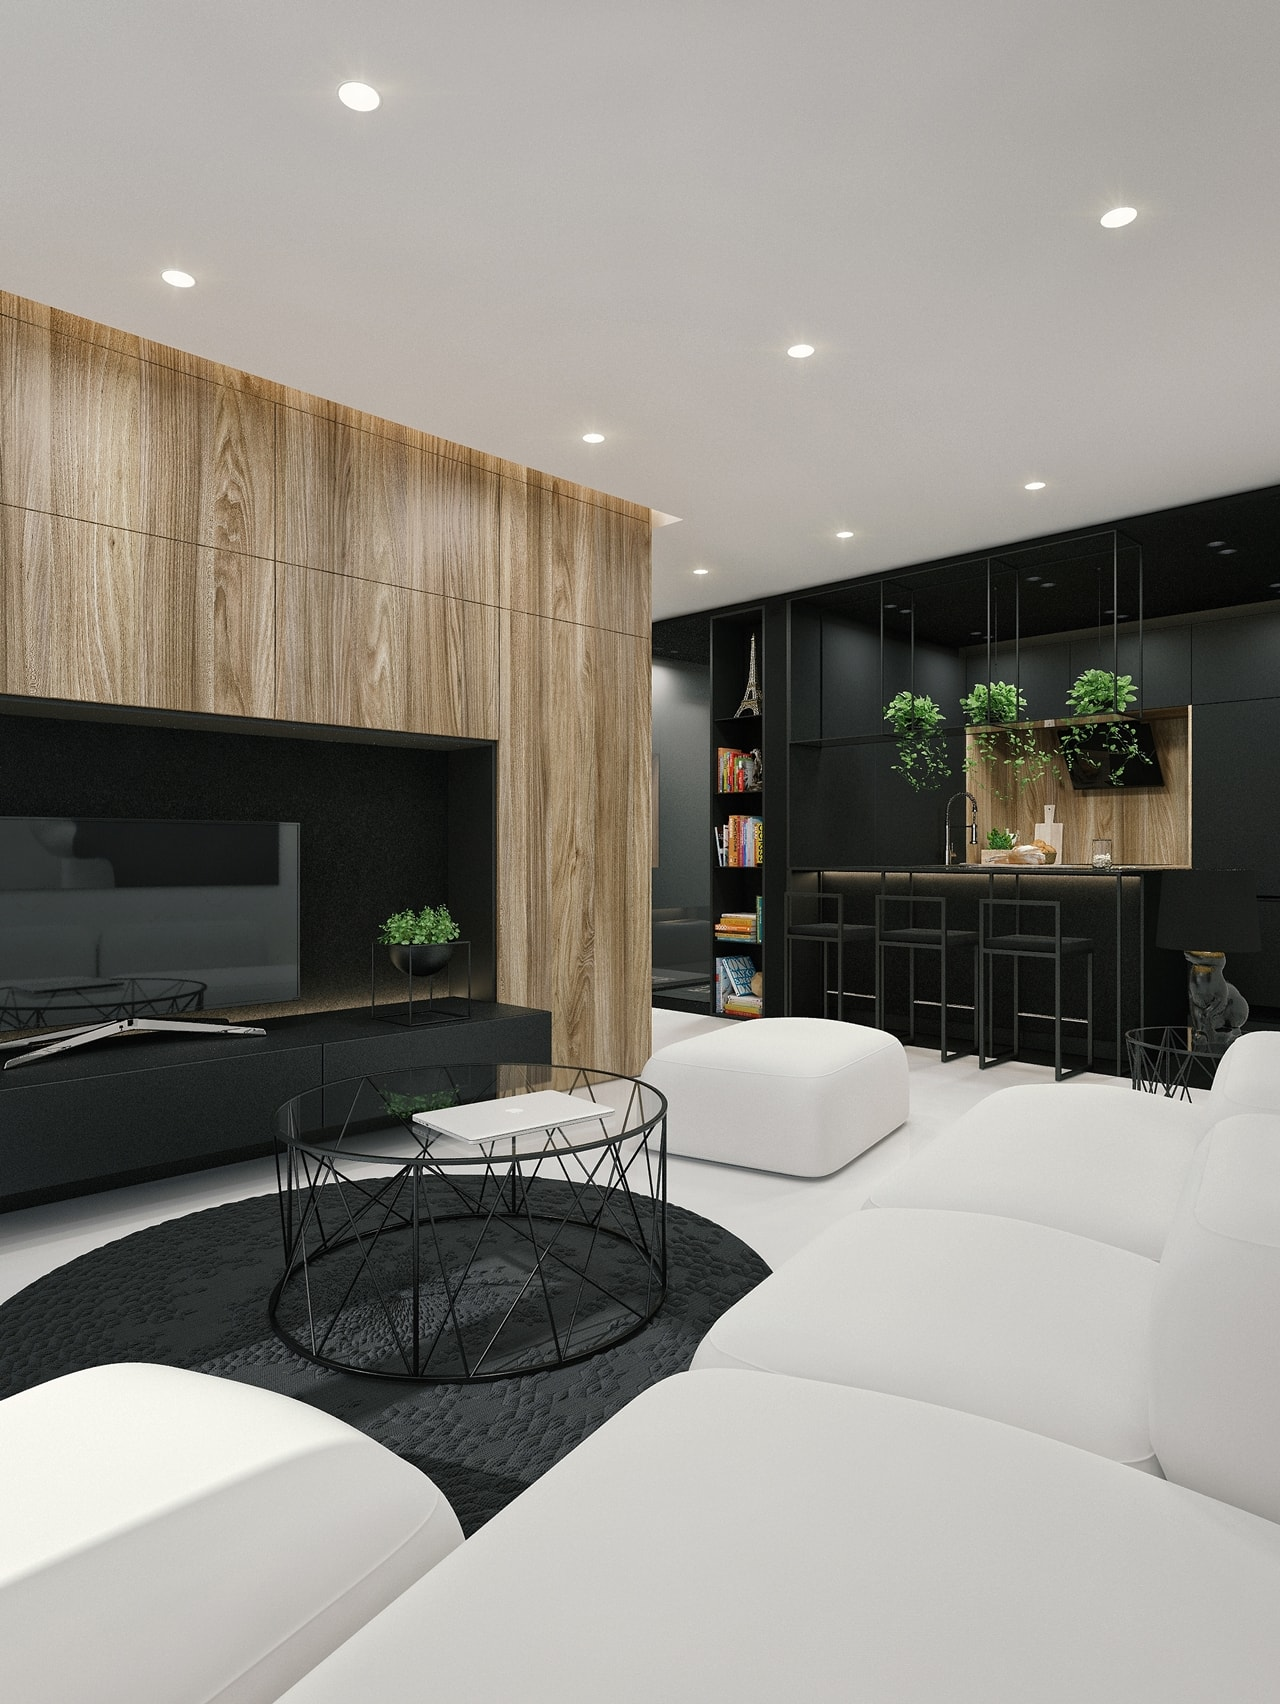 Interior Design Black black and white interior design ideas: modern apartmentid